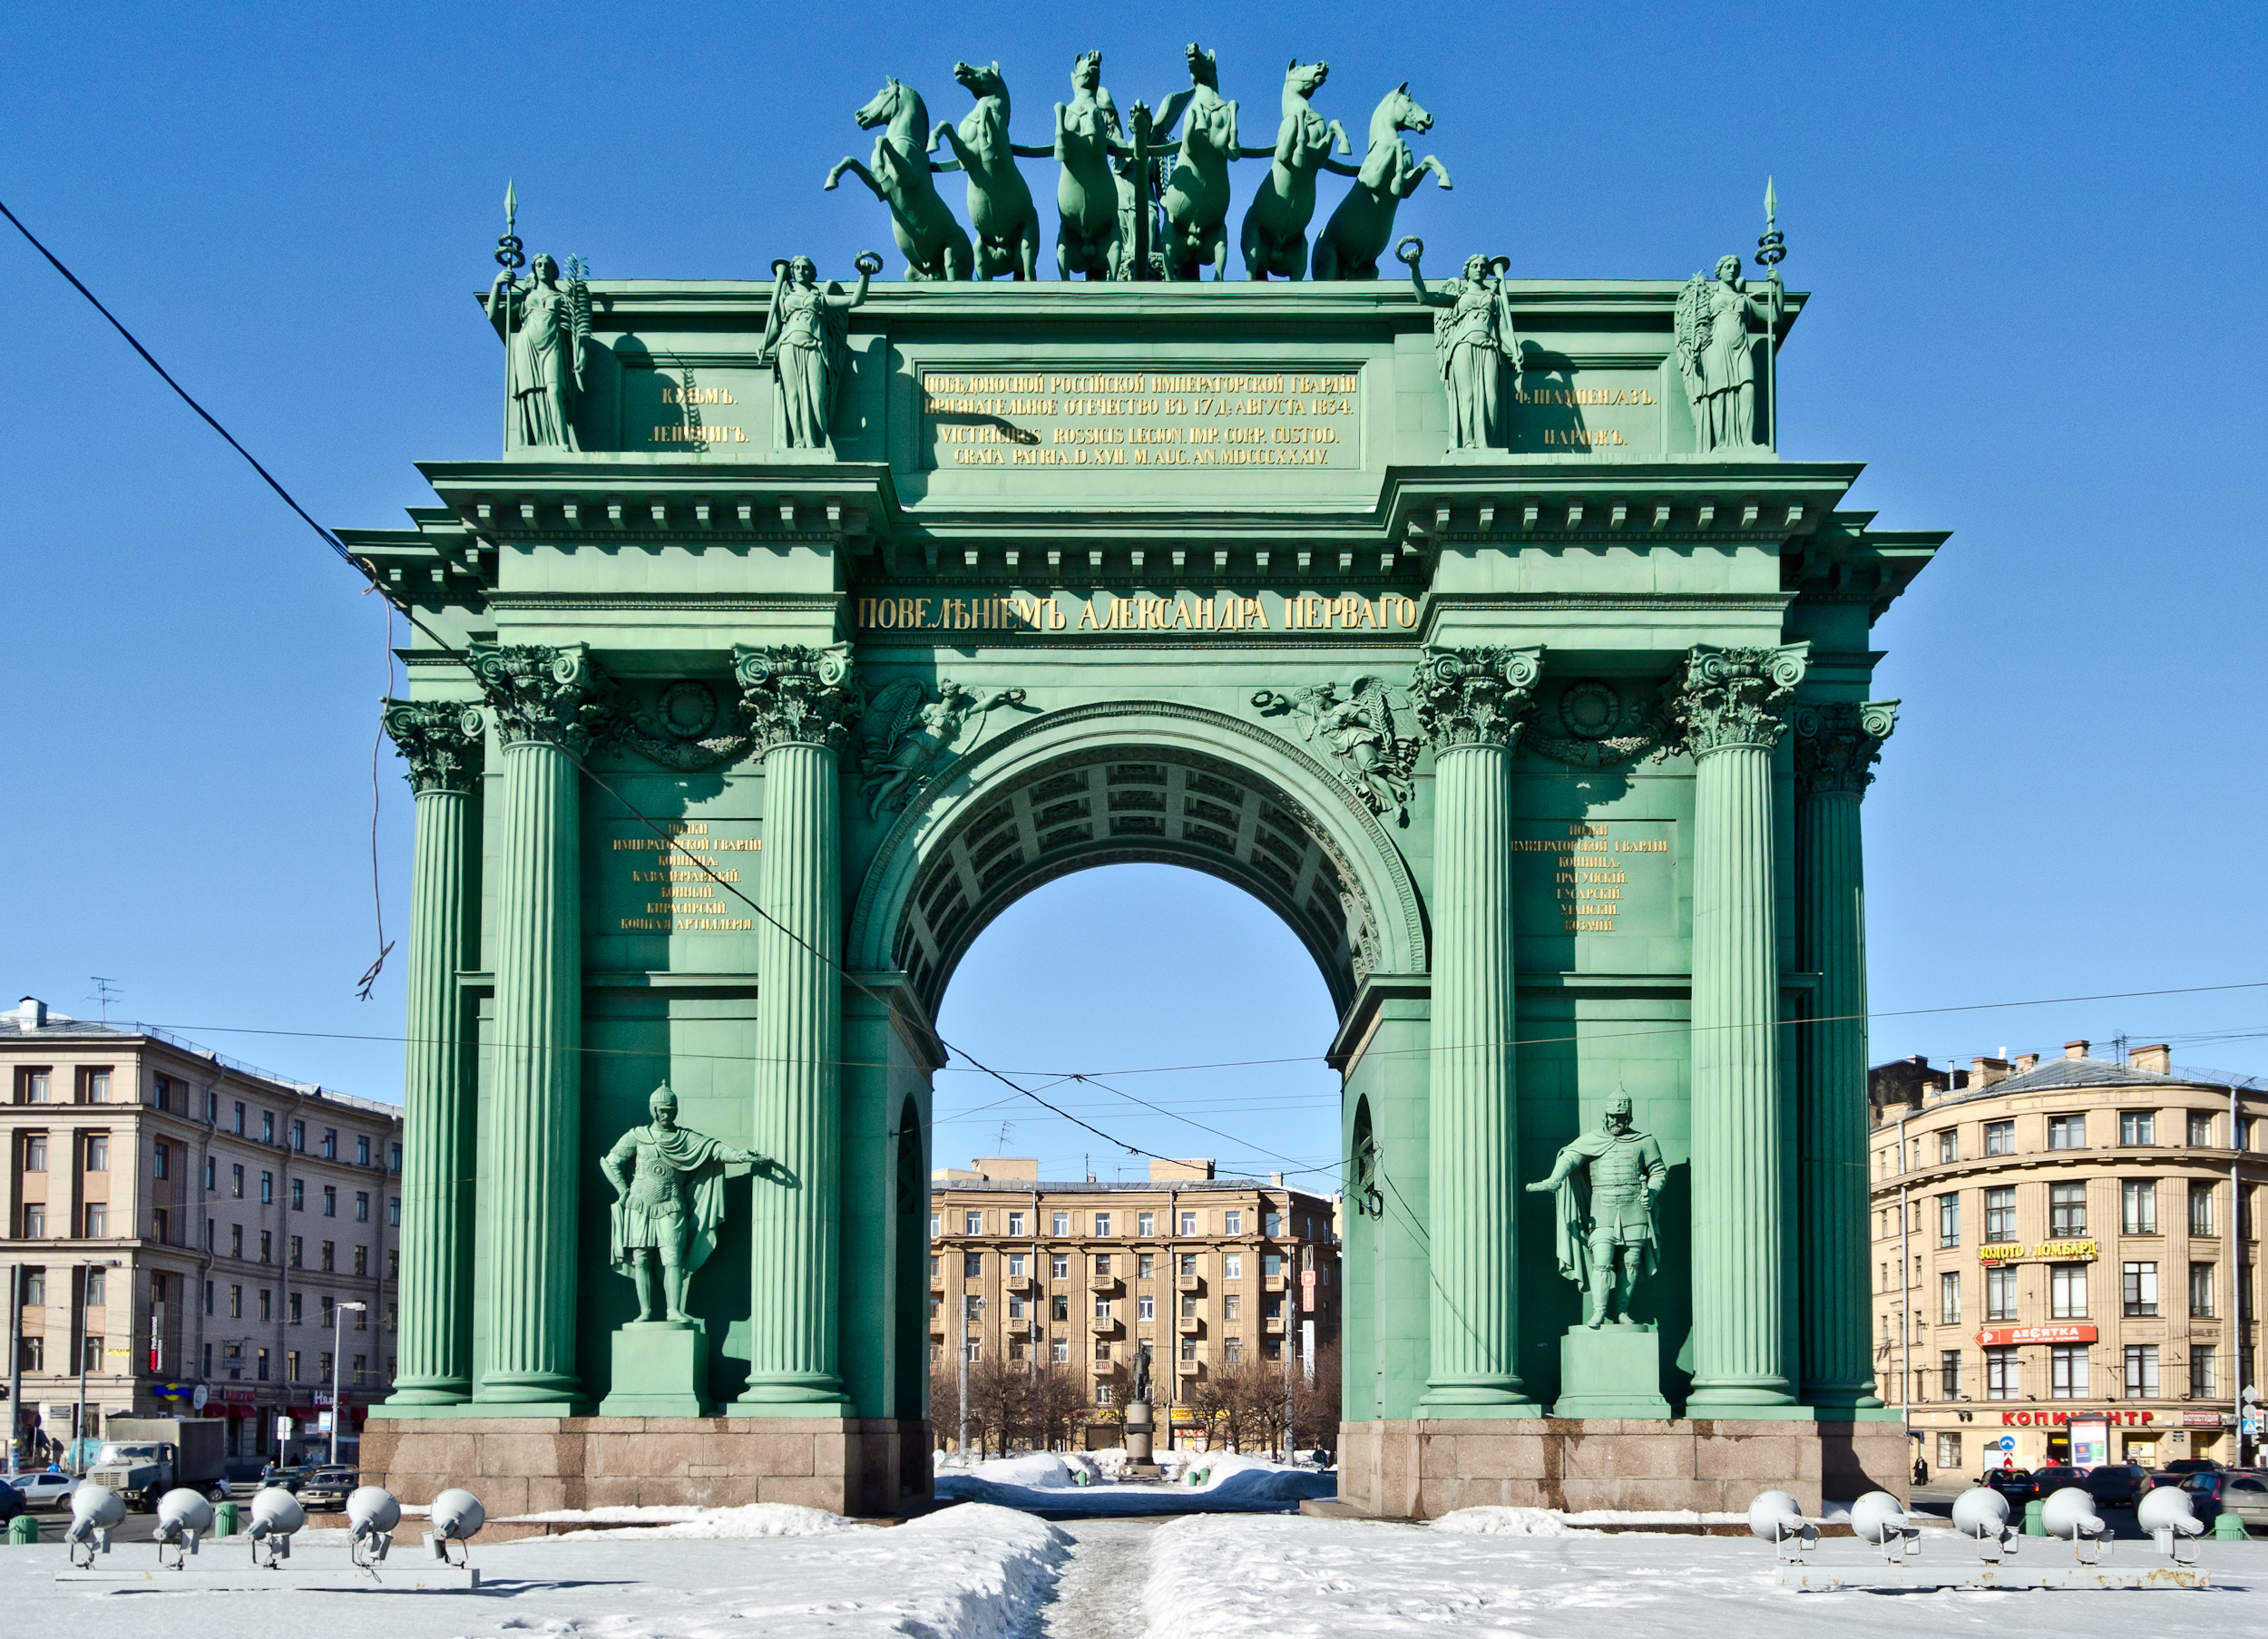 https://upload.wikimedia.org/wikipedia/commons/8/89/Narva_Triumphal_Arch.jpg